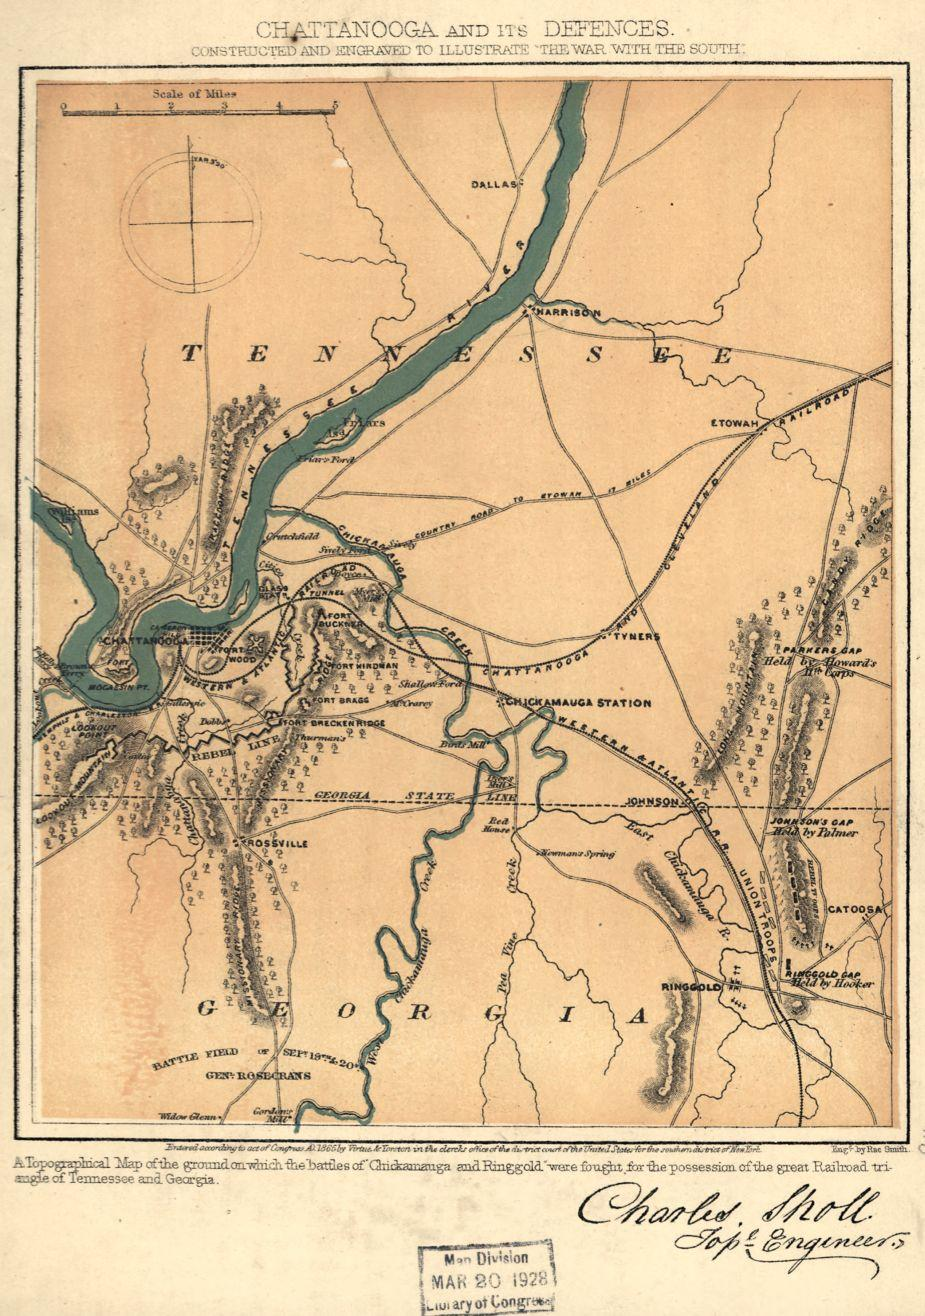 Chattanooga and its defences